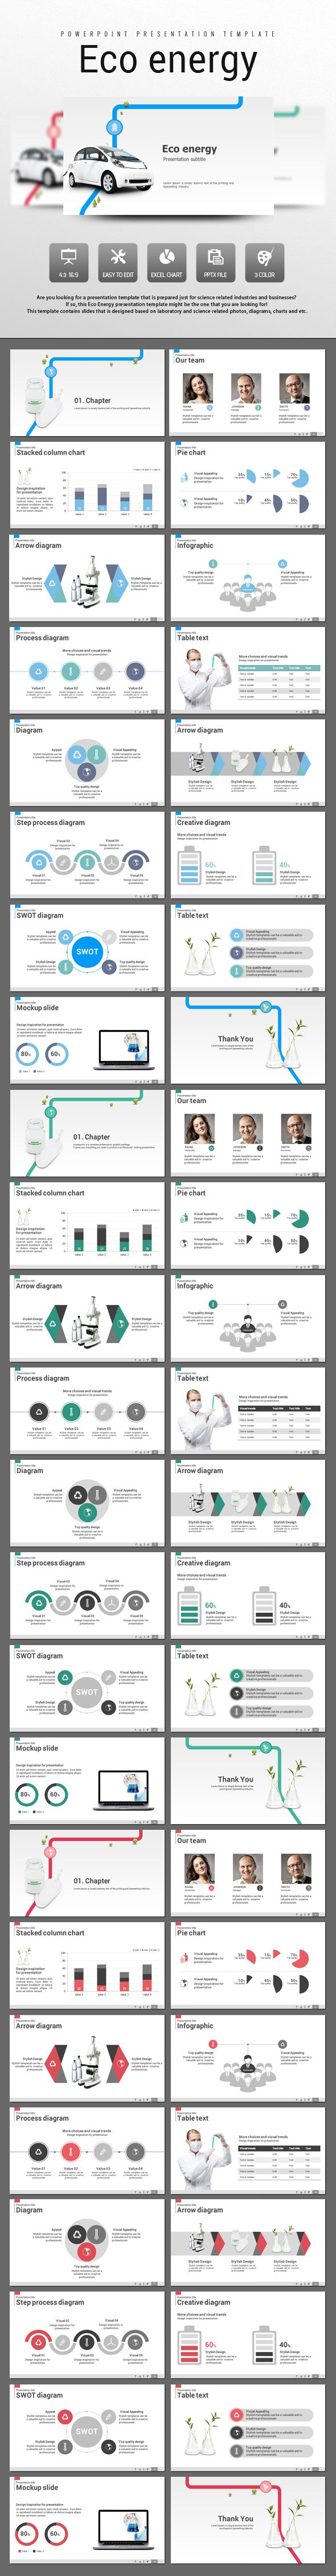 Powerpoint Templates | Stunning Resources for designers - OrTheme